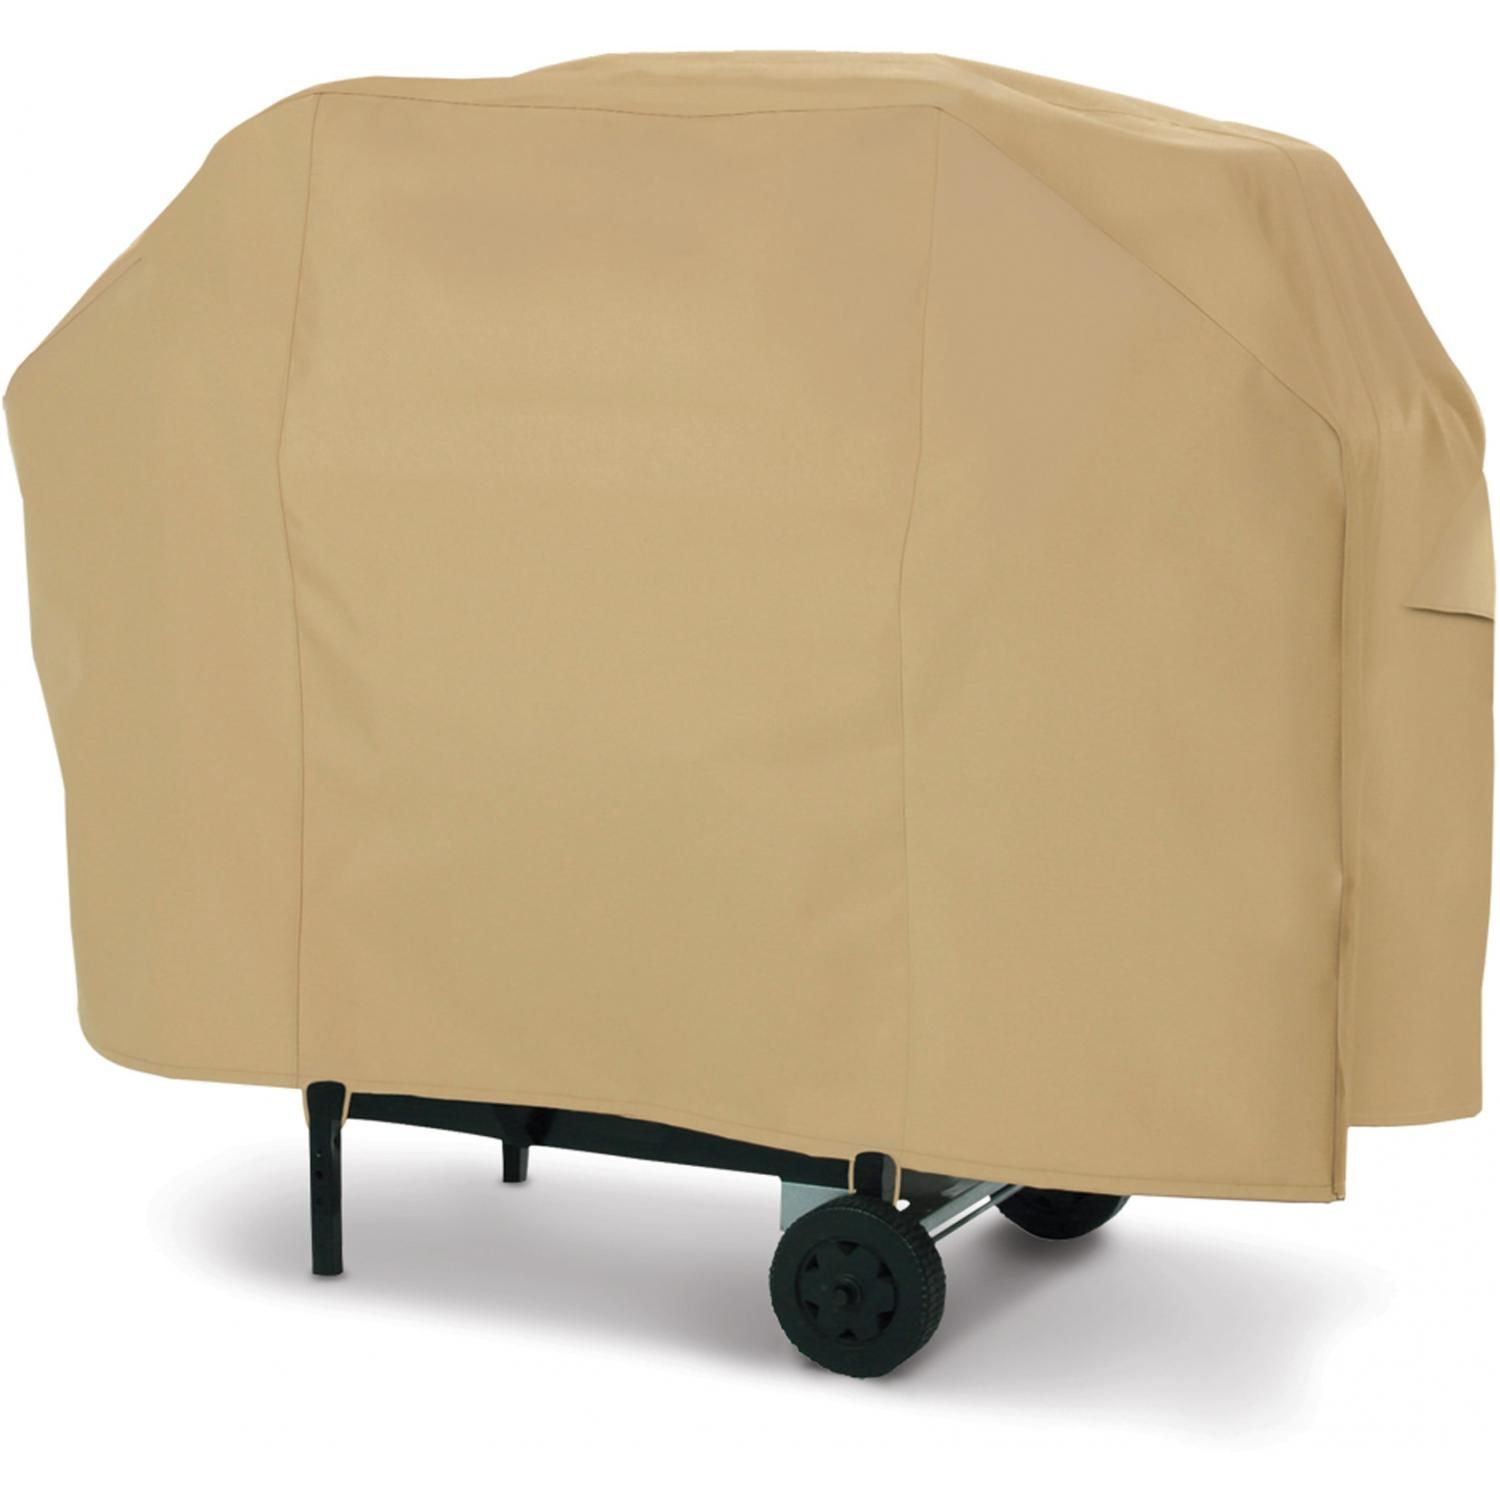 Classic Accessories Terrazzo Cart BBQ Cover - Sand - Large